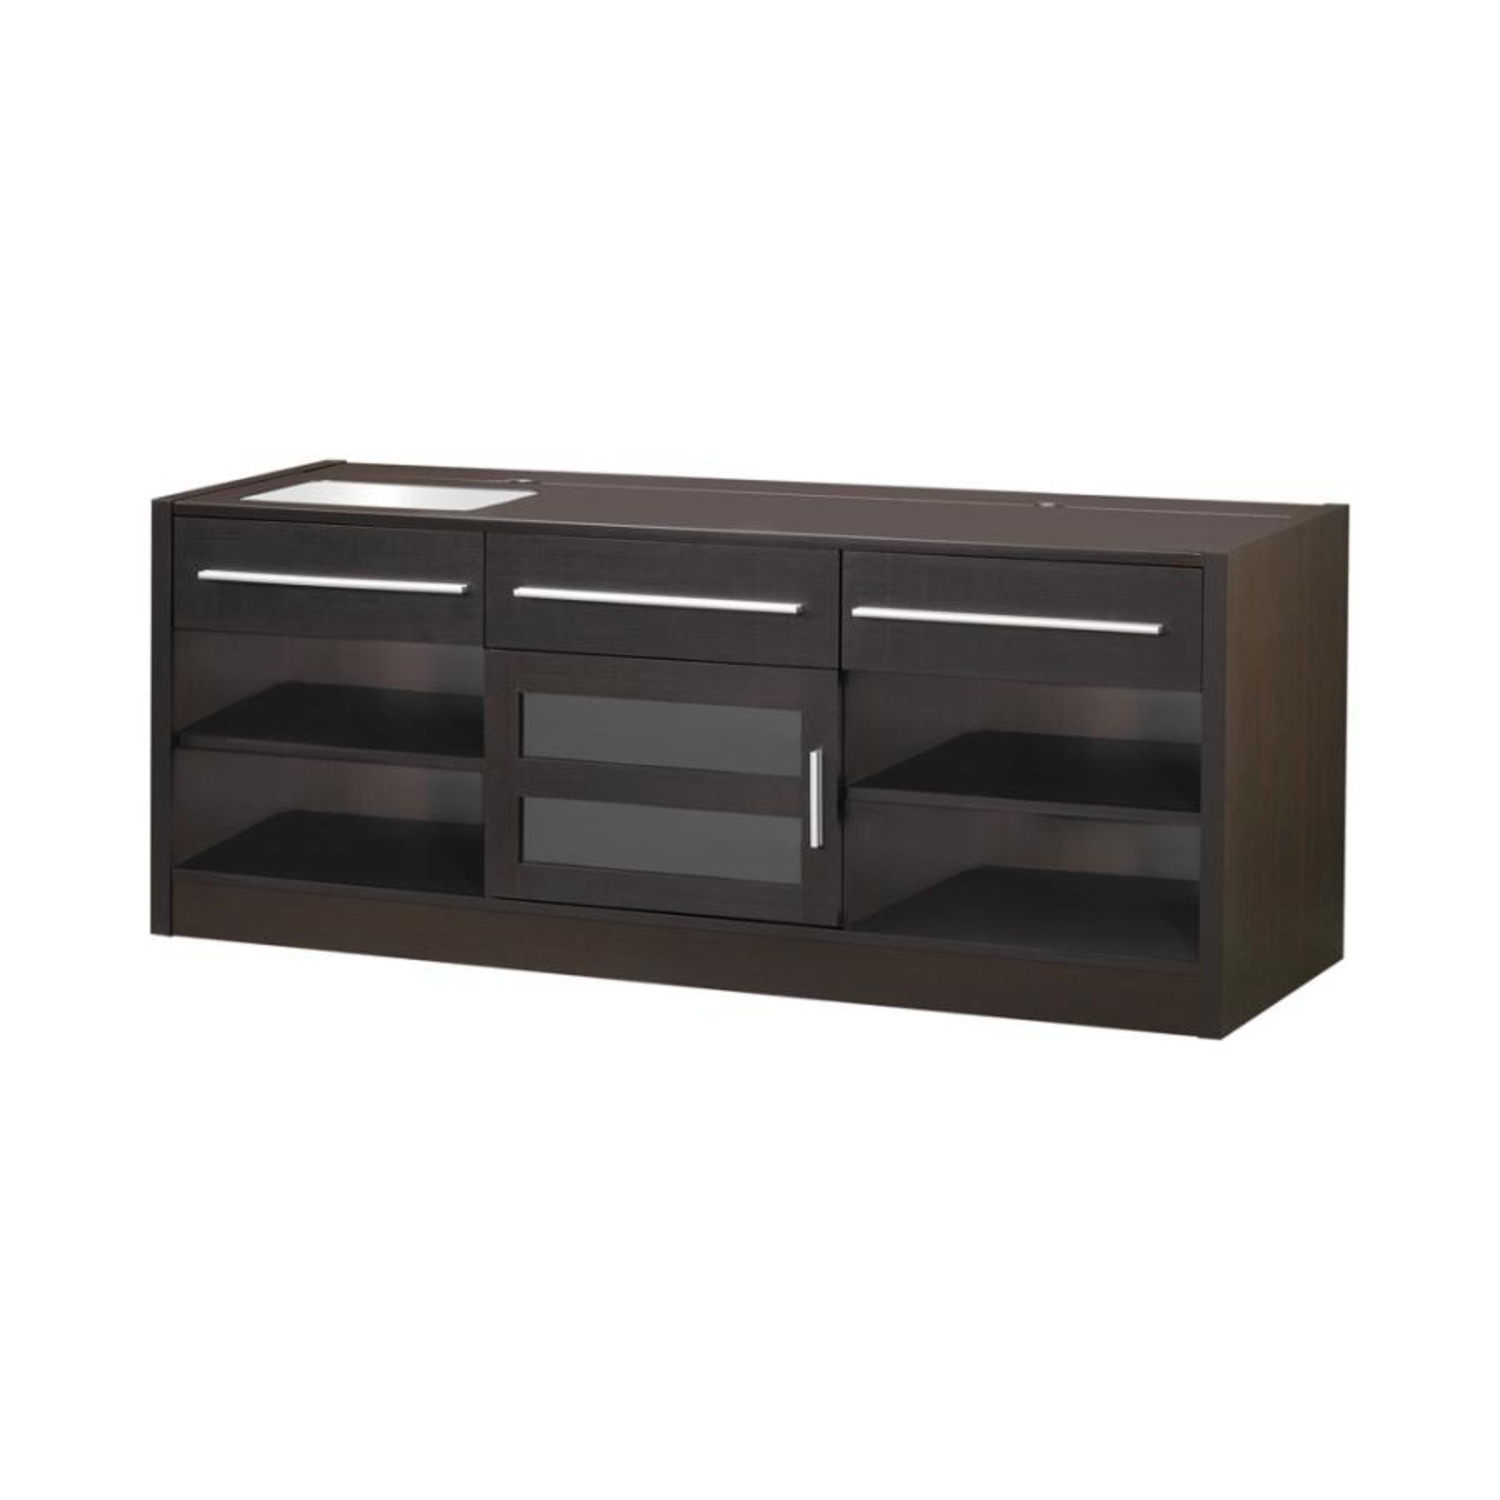 60-Inch Connect-It TV Console In Cappuccino Finish - image-0